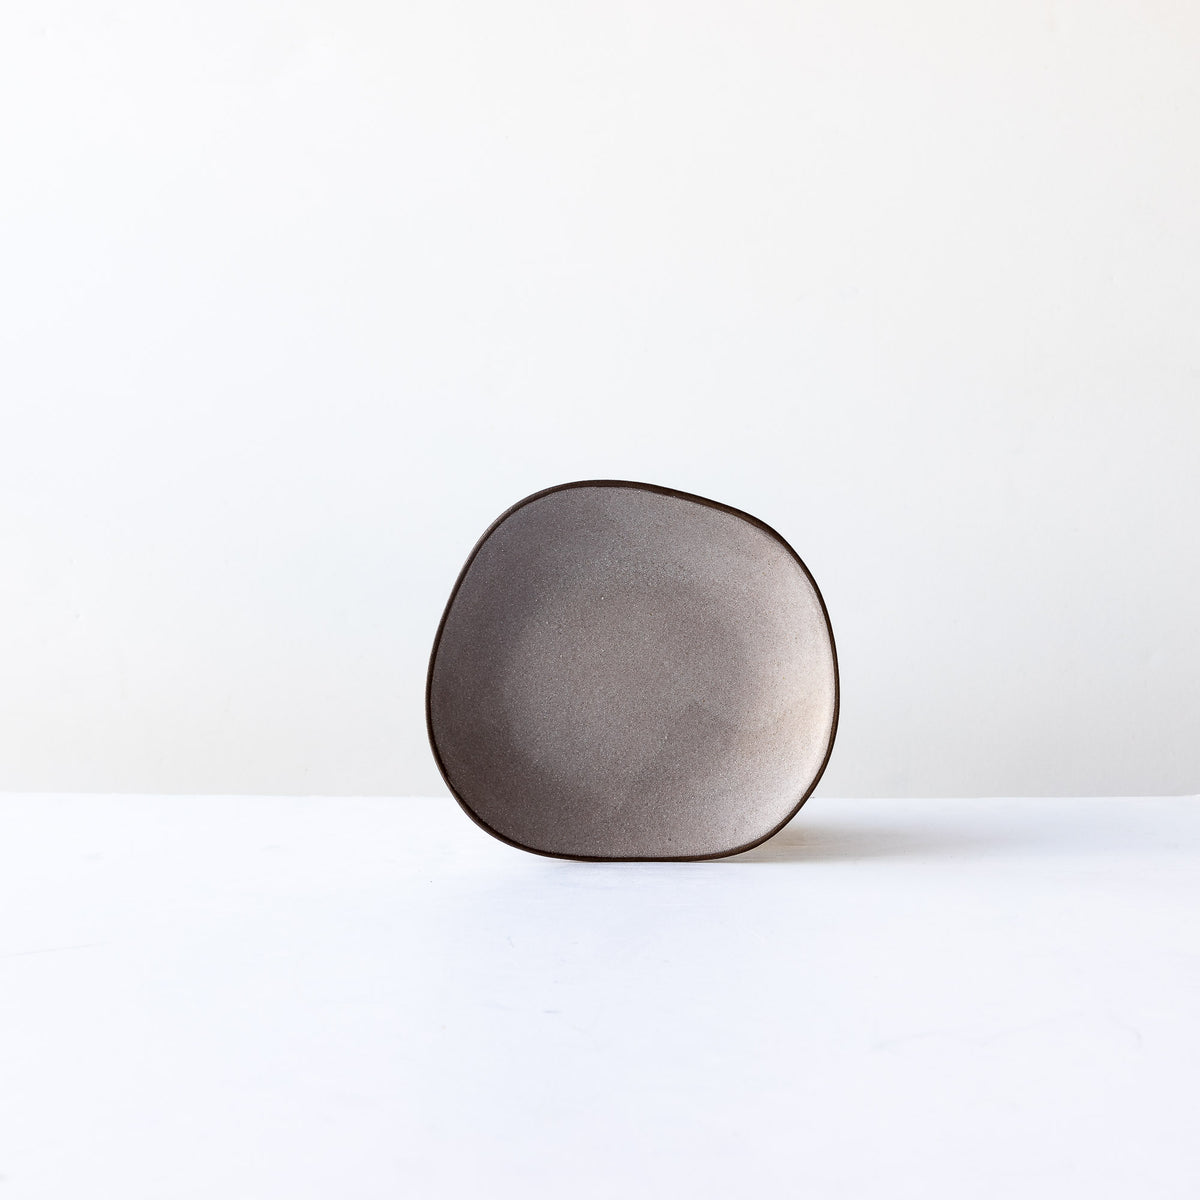 Grey Handcrafted Organic Shaped Small Stoneware Plate - Sold by Chic & Basta